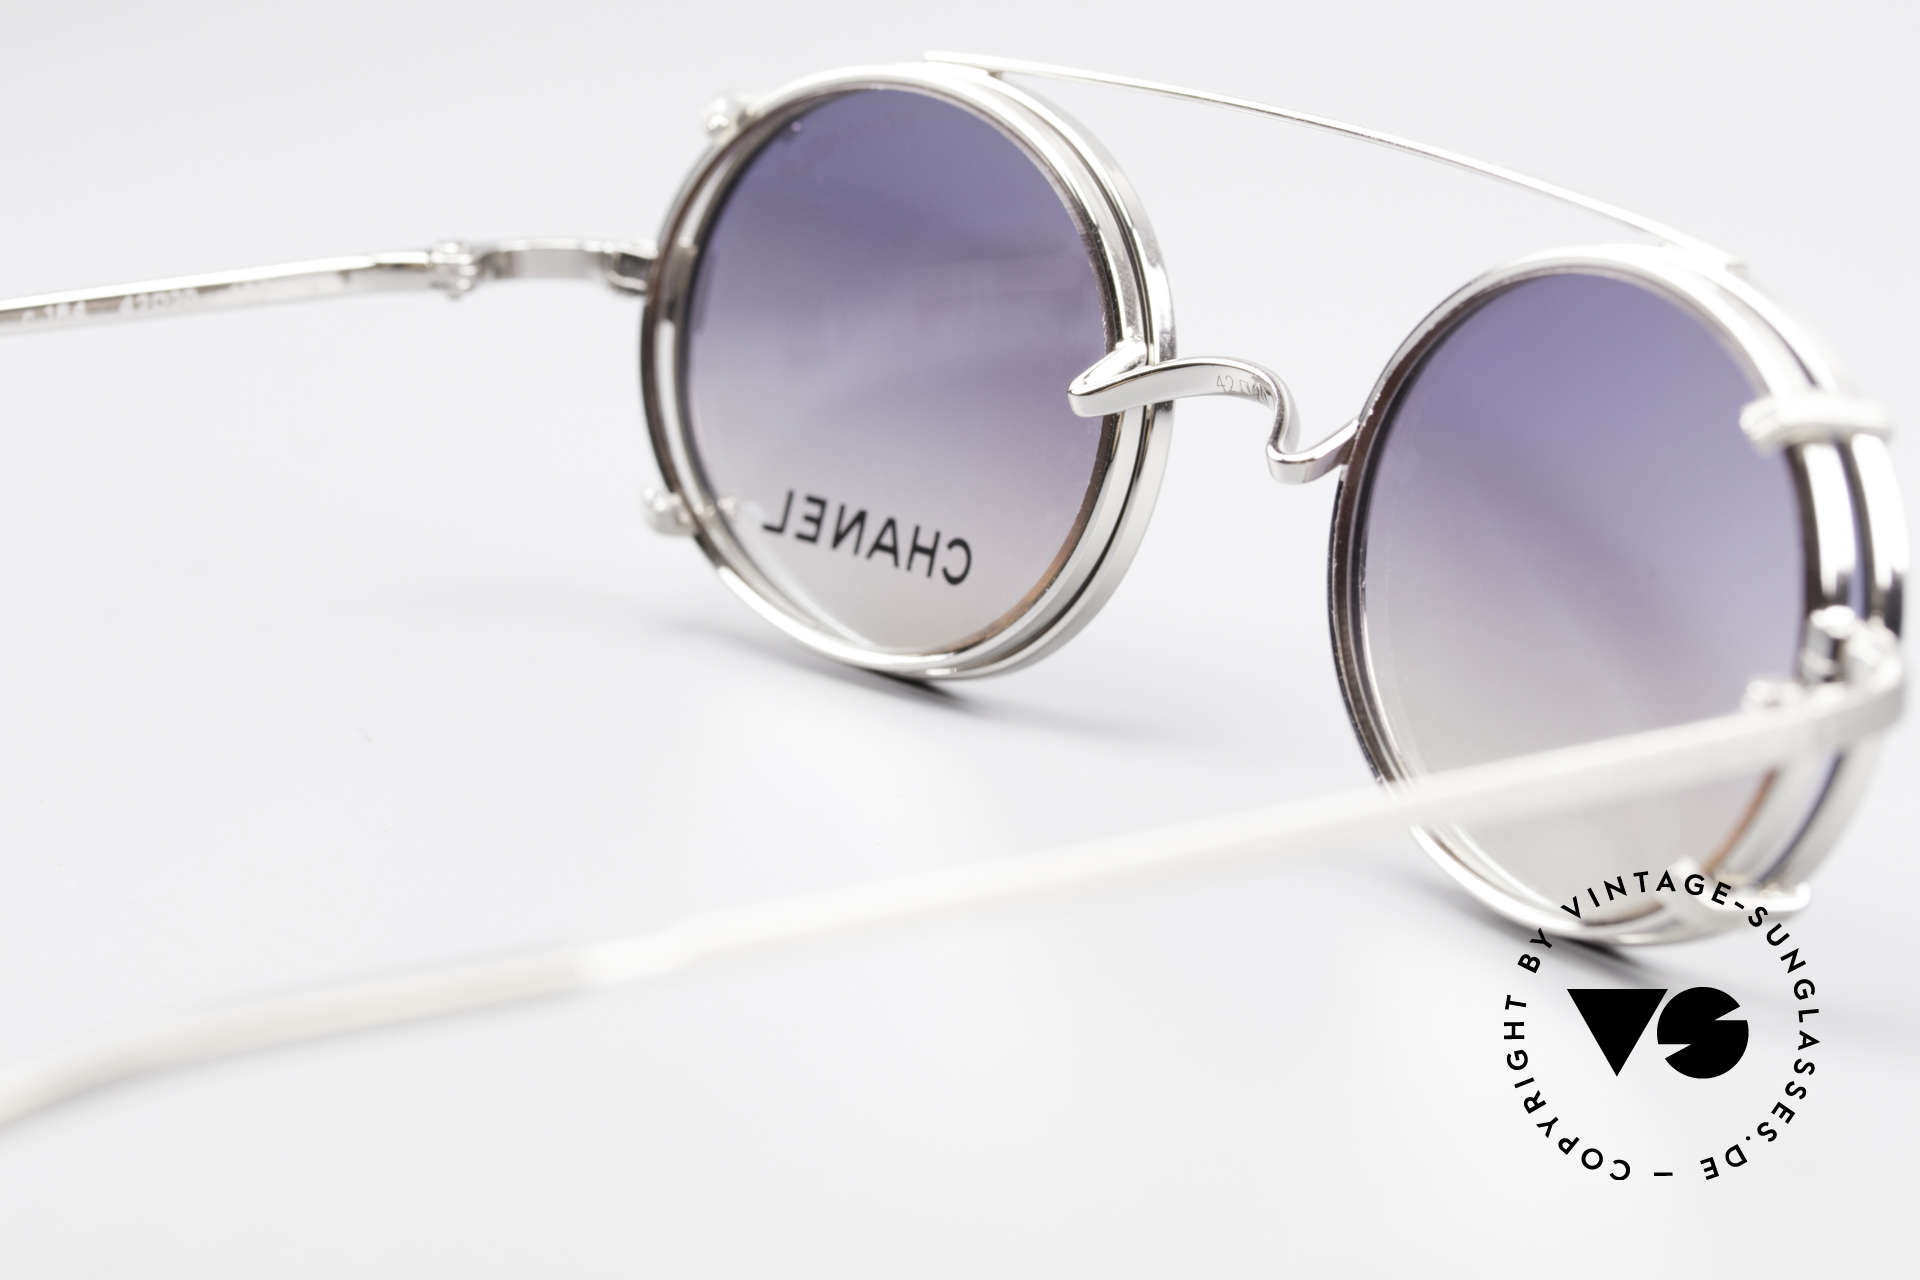 Chanel 2037 Oval Luxury Glasses Clip On, NO RETRO fashion, but a 20 years old vintage Original, Made for Men and Women